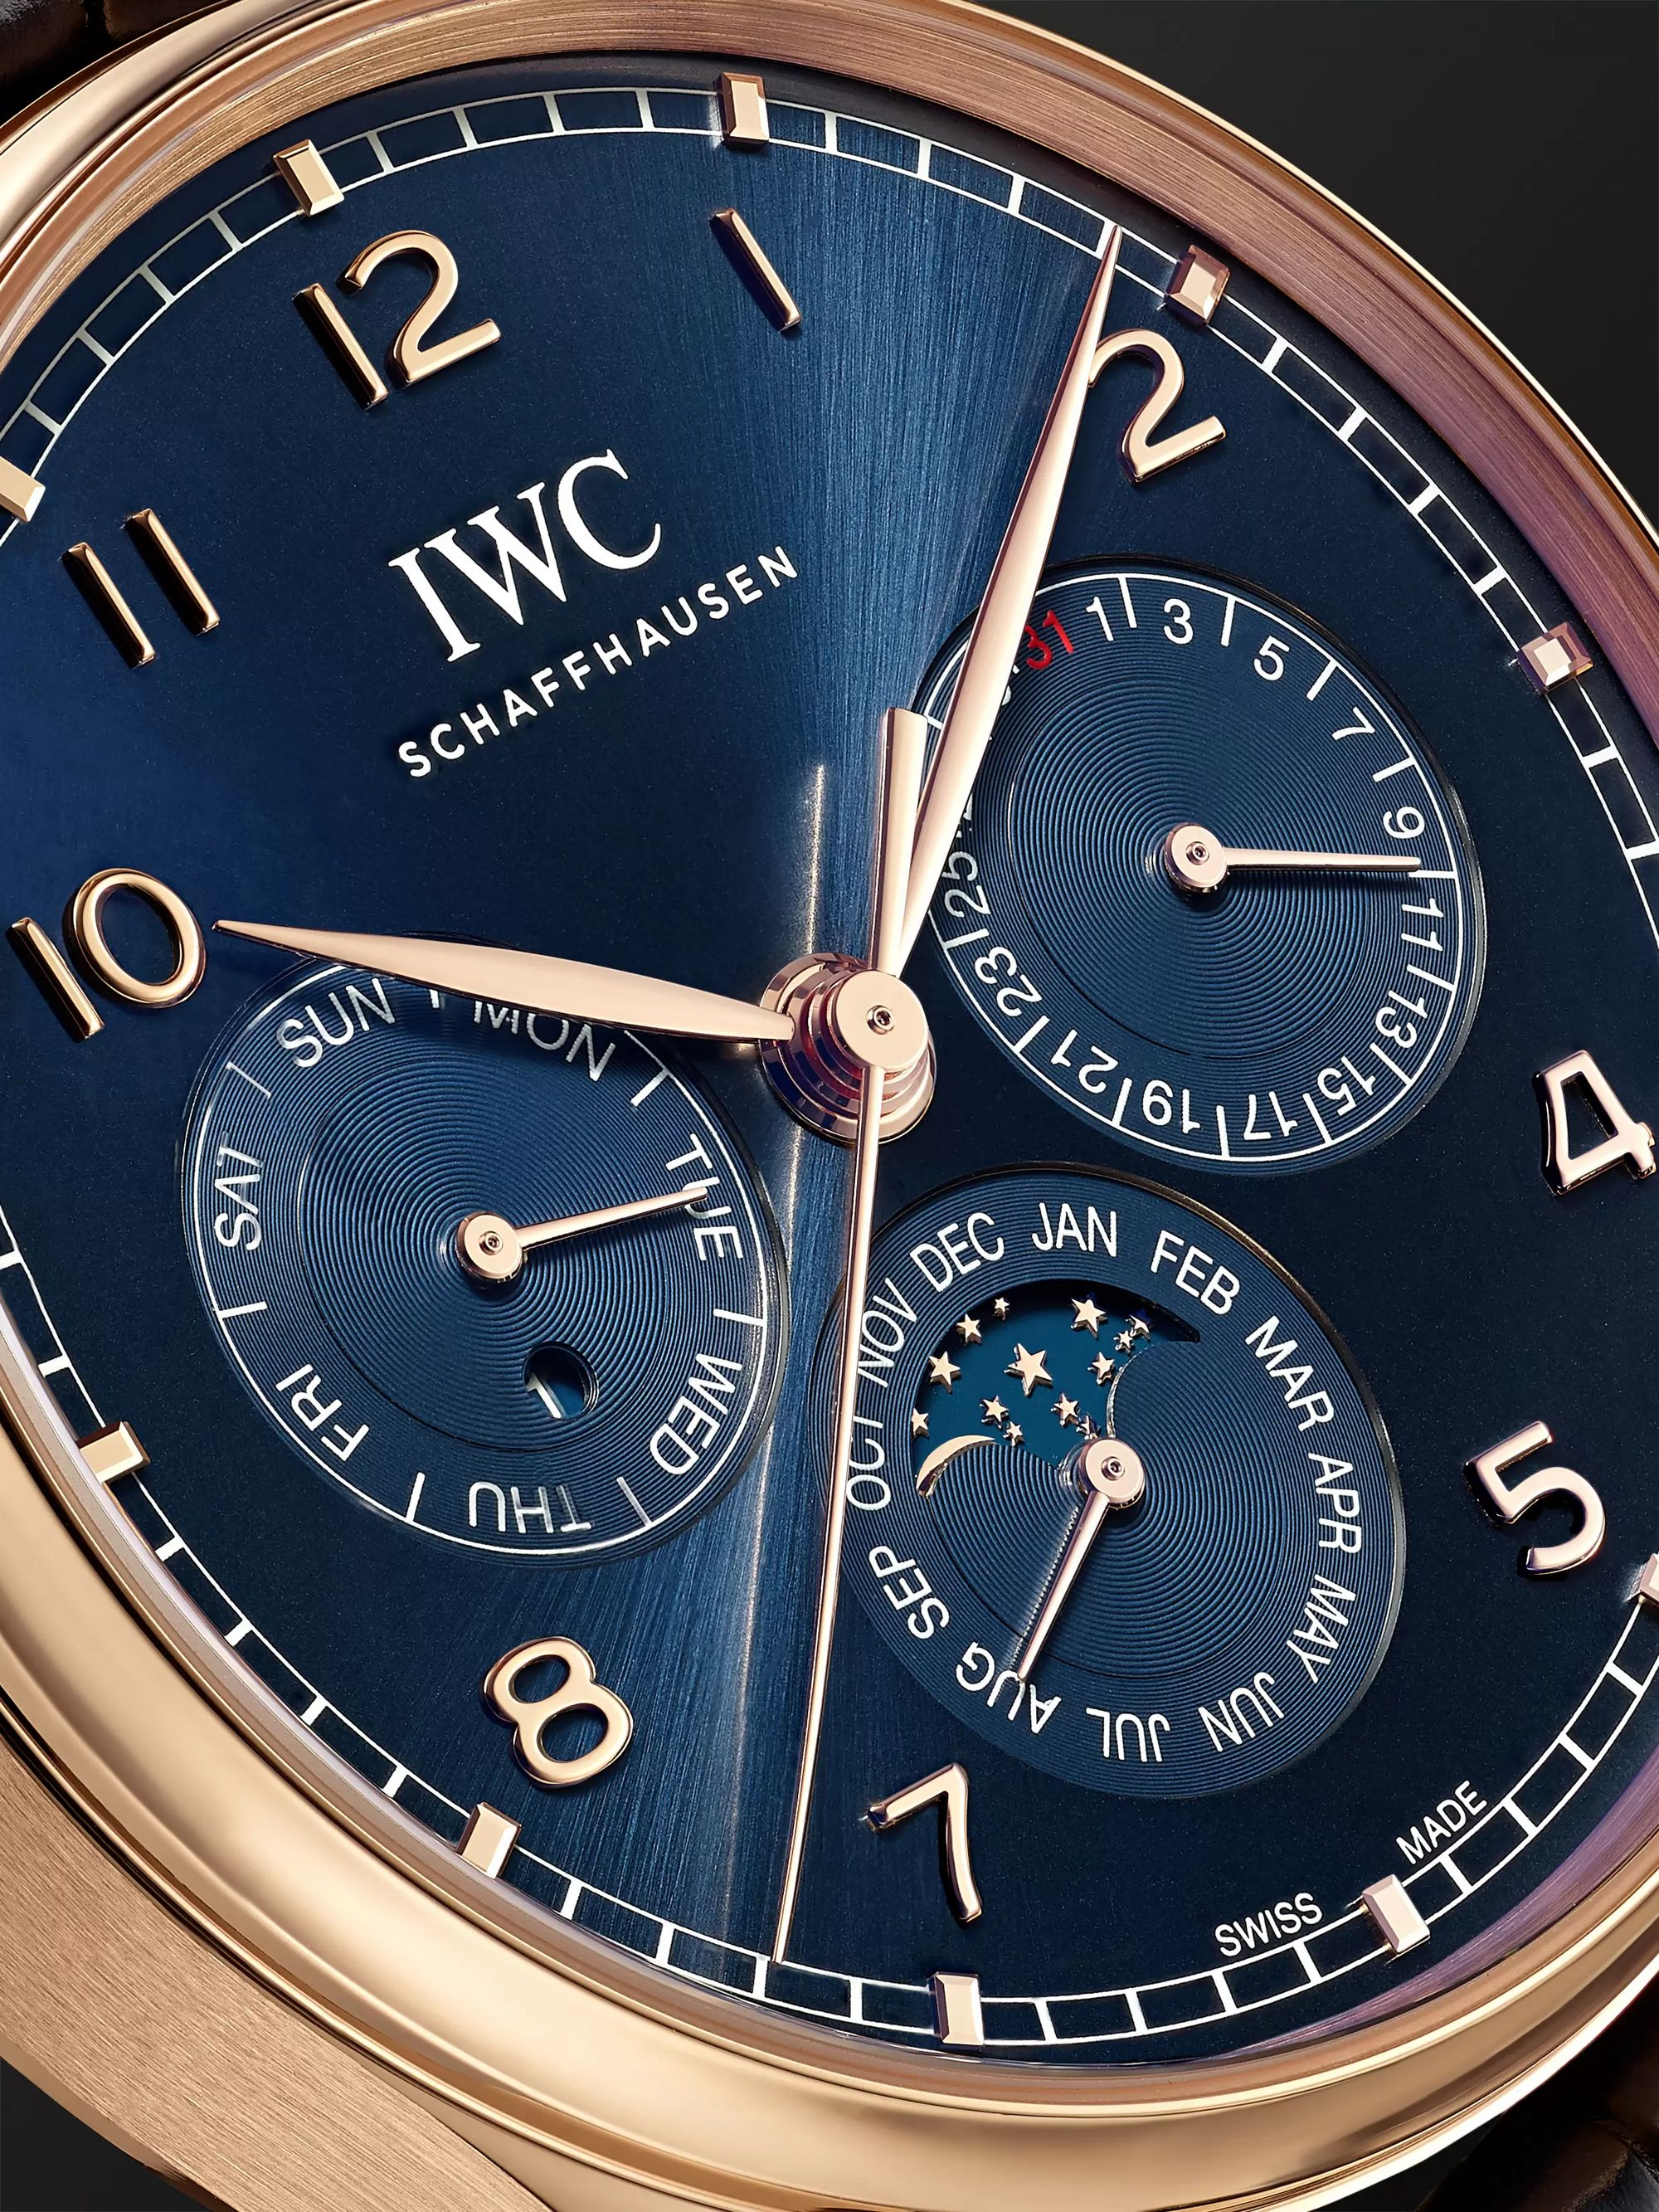 IWC SCHAFFHAUSEN Portugieser Perpetual Calendar Boutique Edition Automatic 42.4mm 18-Karat Red Gold and Alligator Watch, Ref. No. IW344205